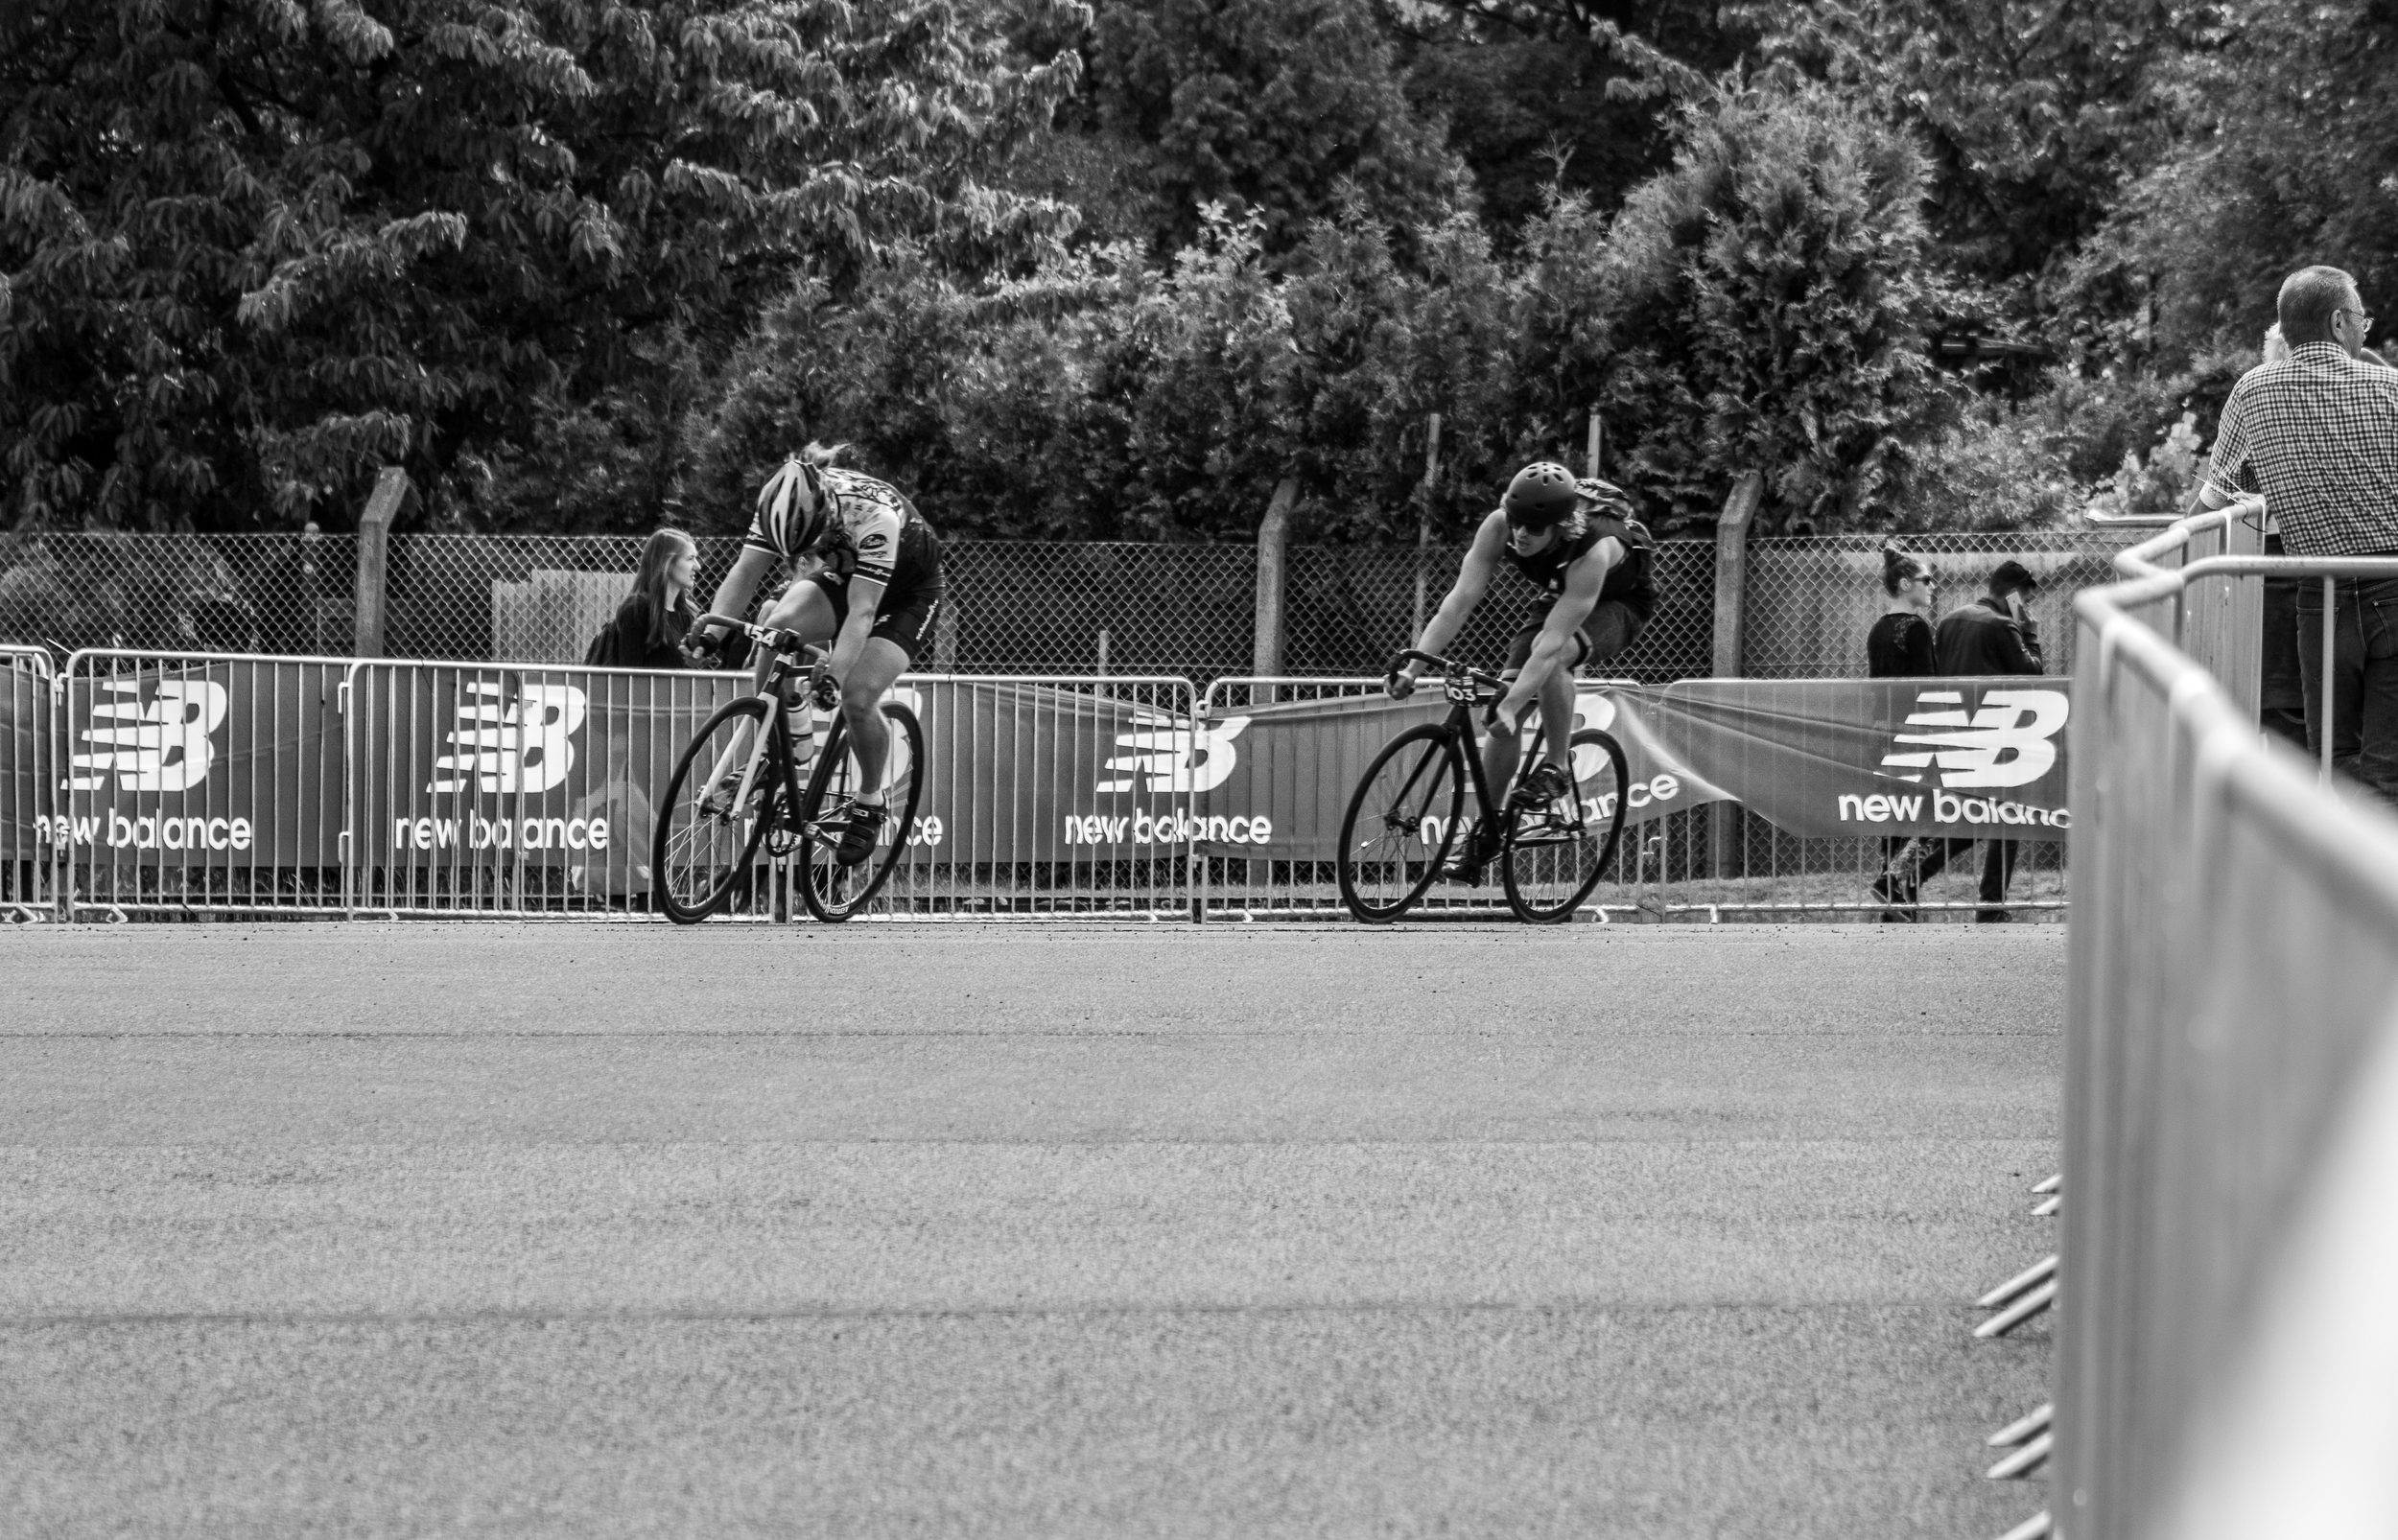 RAD RACE Fixed42 World Championship, Berlin May31st, Pic by Luis Bompastor_03.jpg